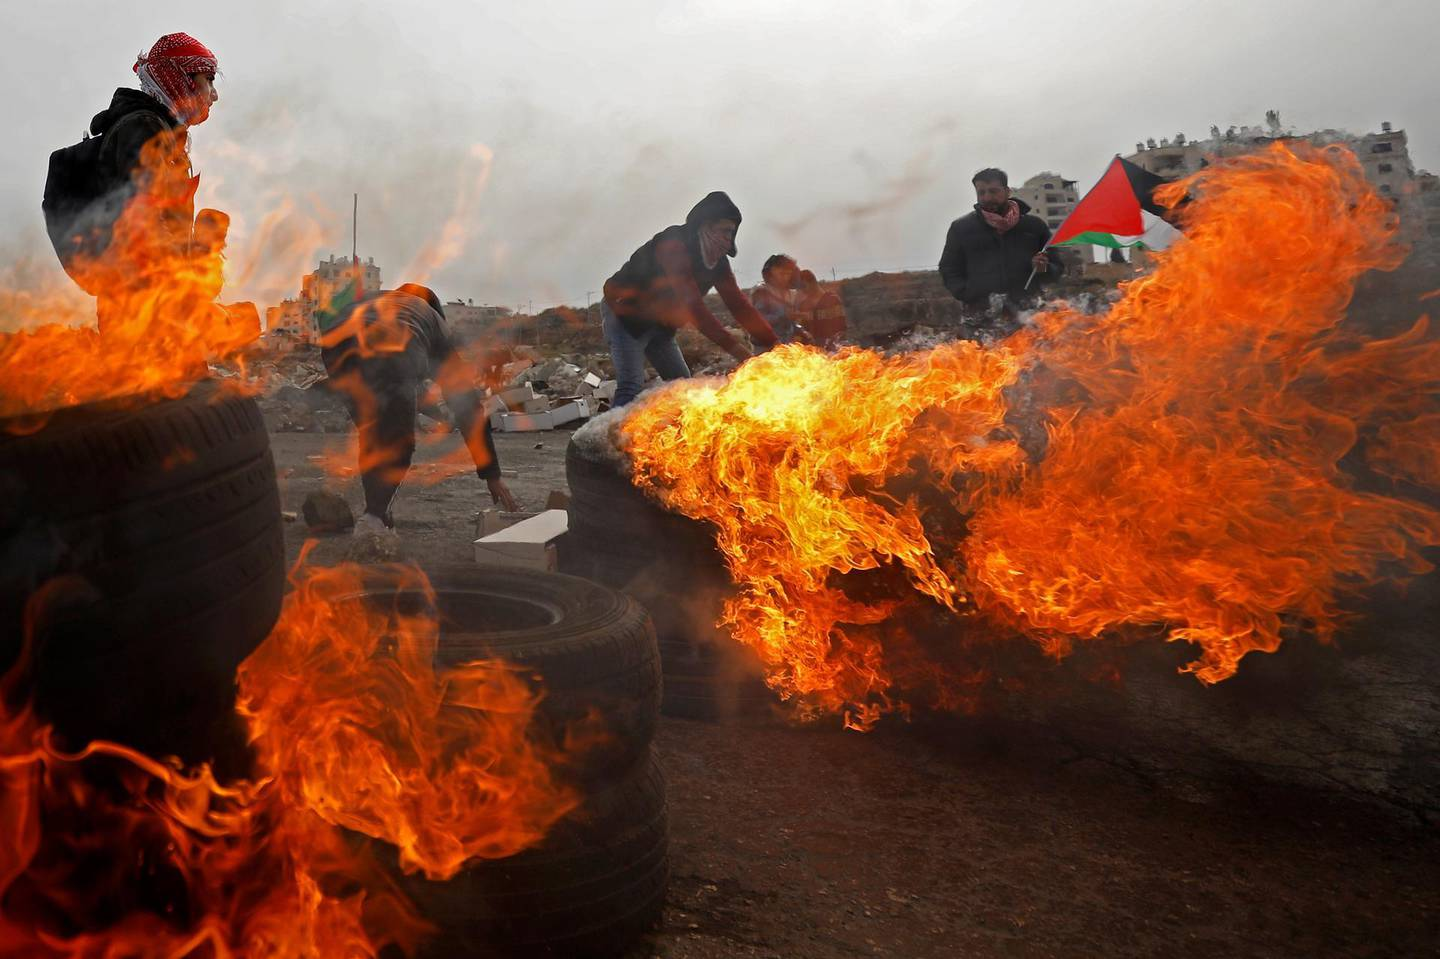 Palestinians take part in a protest against the U.S. President Donald Trump's Middle East peace plan, near the Jewish settlement of Beit El in the Israeli-occupied West Bank February 14, 2020. REUTERS/Mohamad Torokman